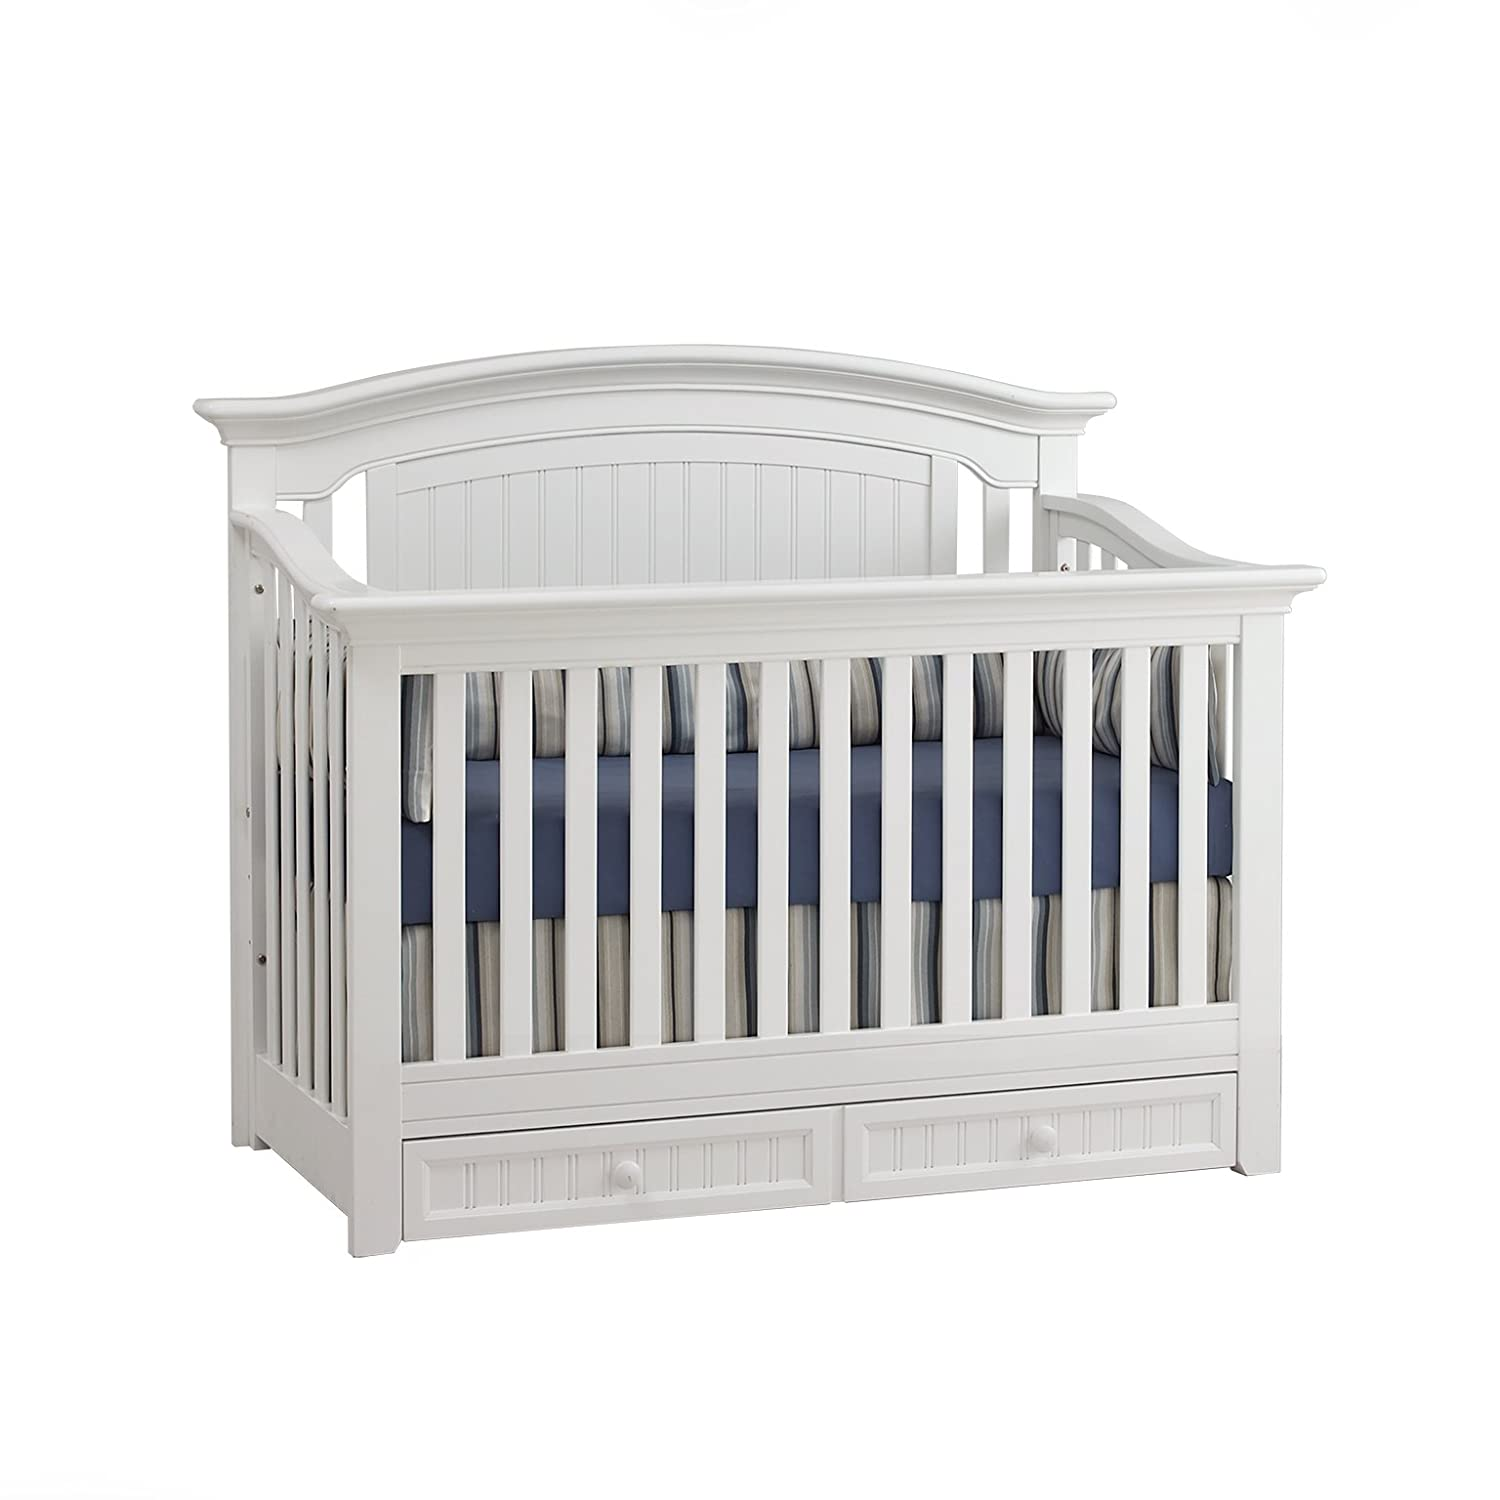 Amazon.com : Suite Bebe Winchester 4-in-1 Convertible Crib White : Baby